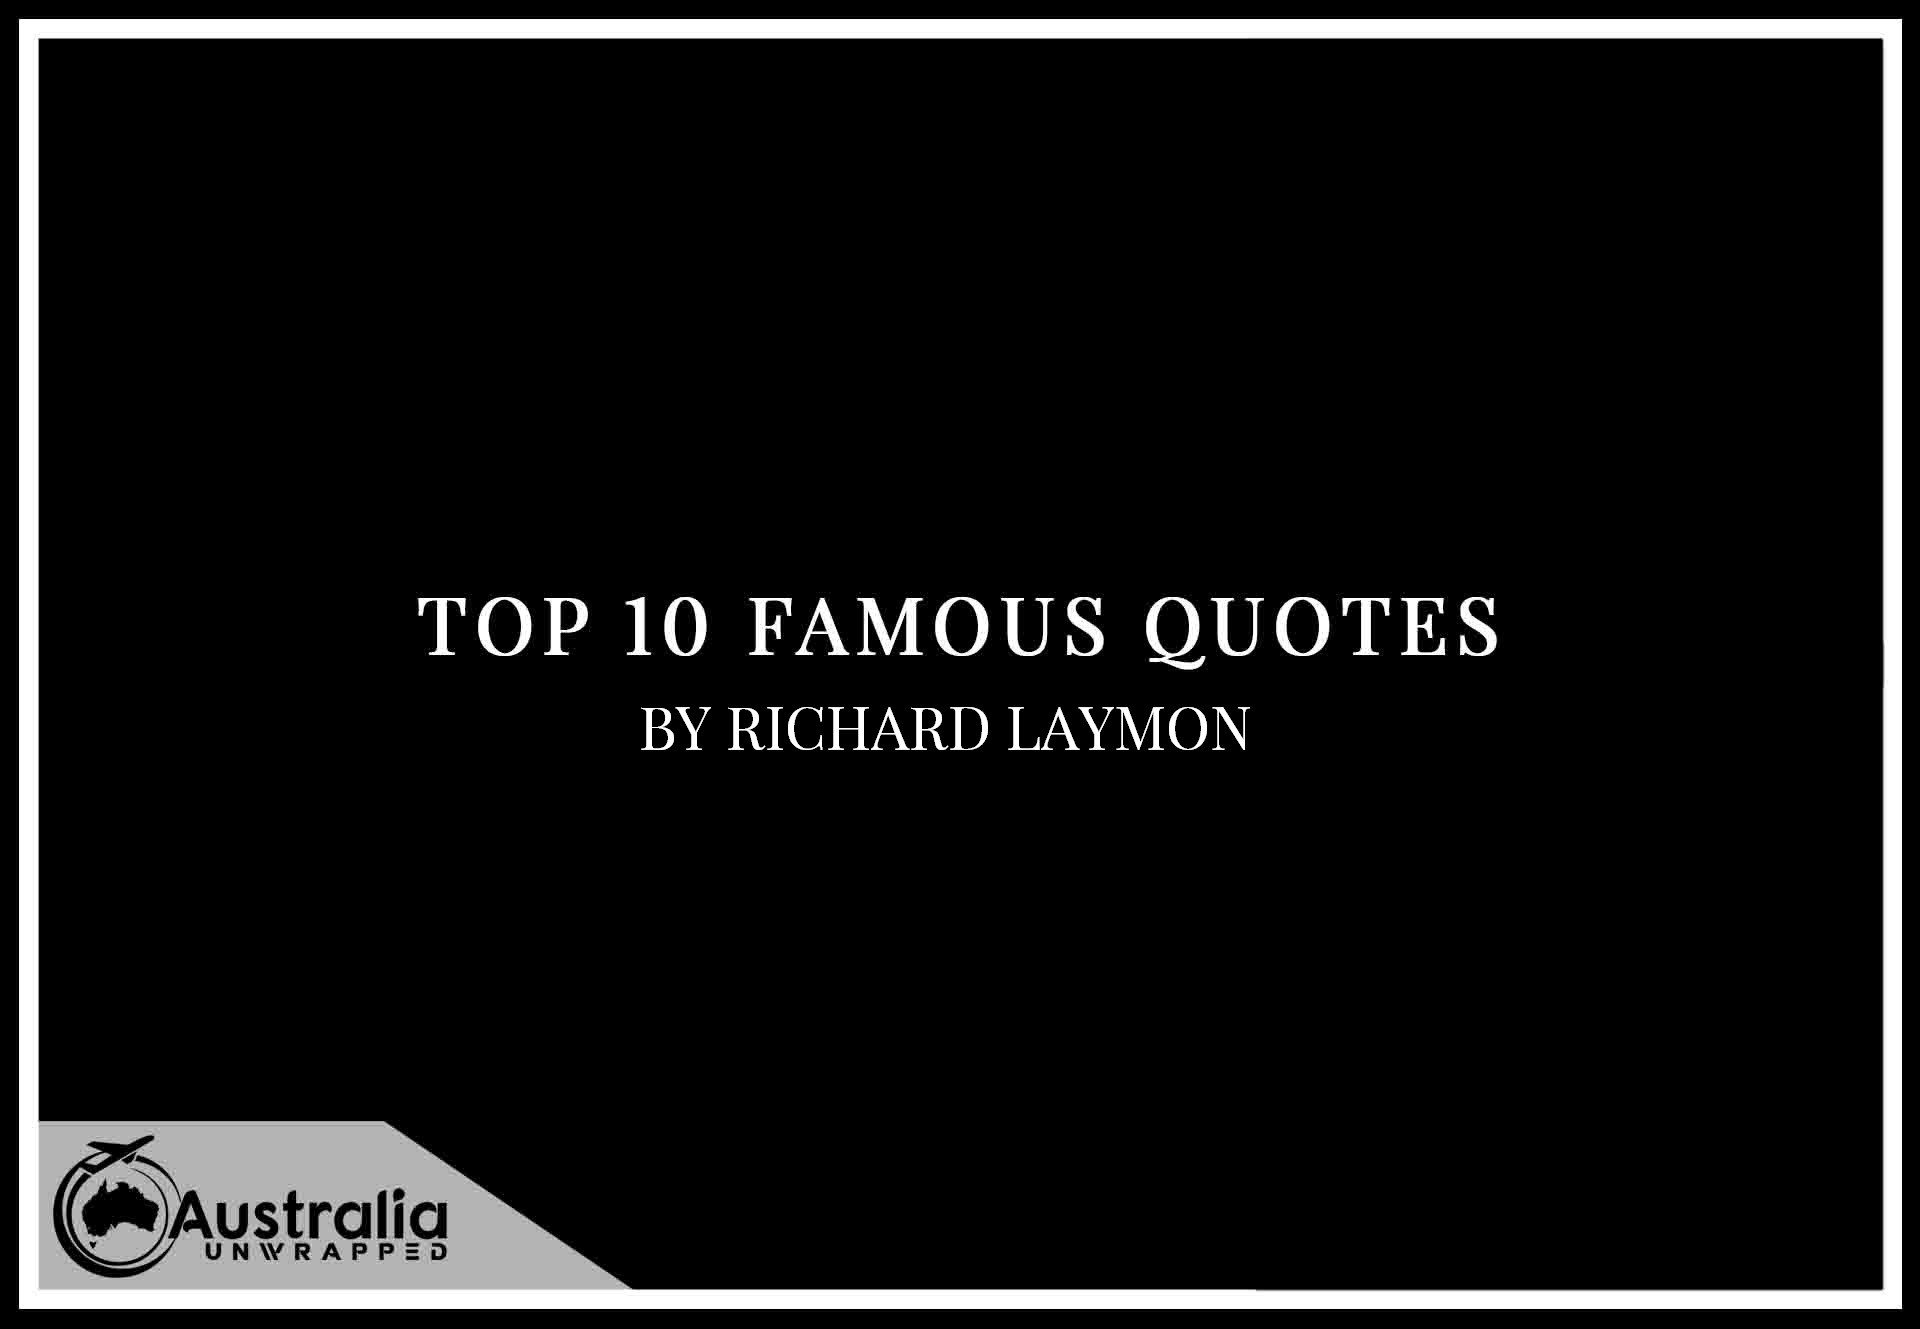 Richard Laymon's Top 10 Popular and Famous Quote